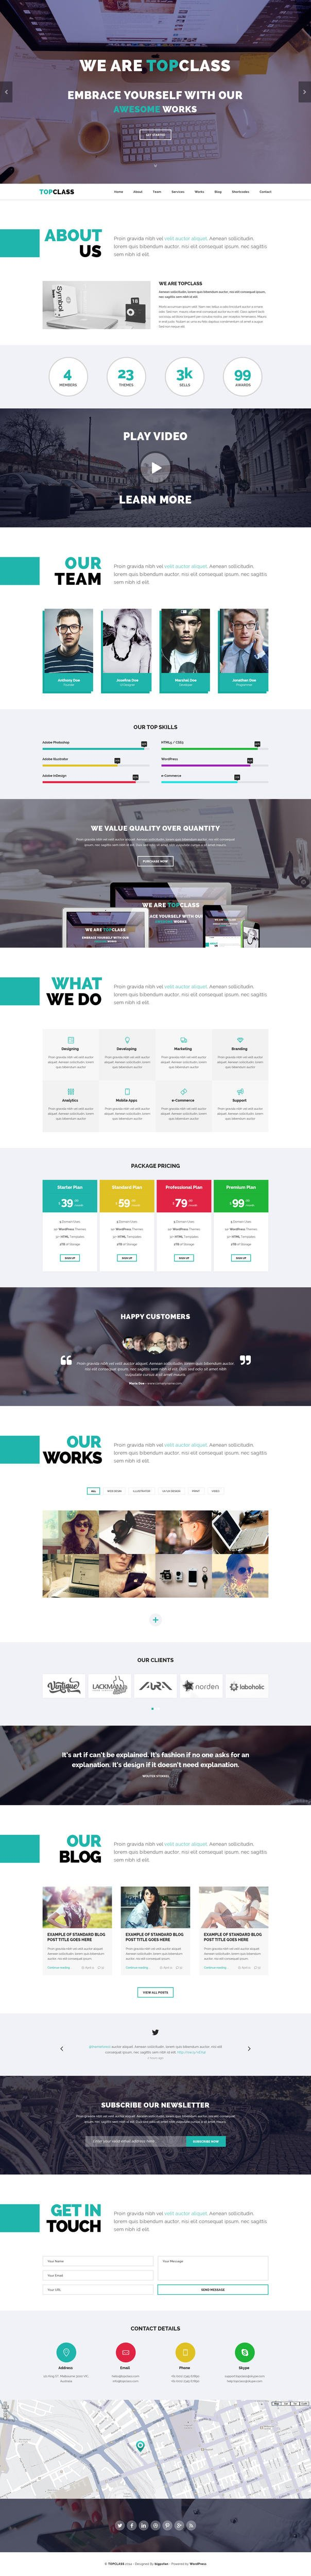 PSD to Responsive HTML5+CSS3 by Jewel_Theme - 106346